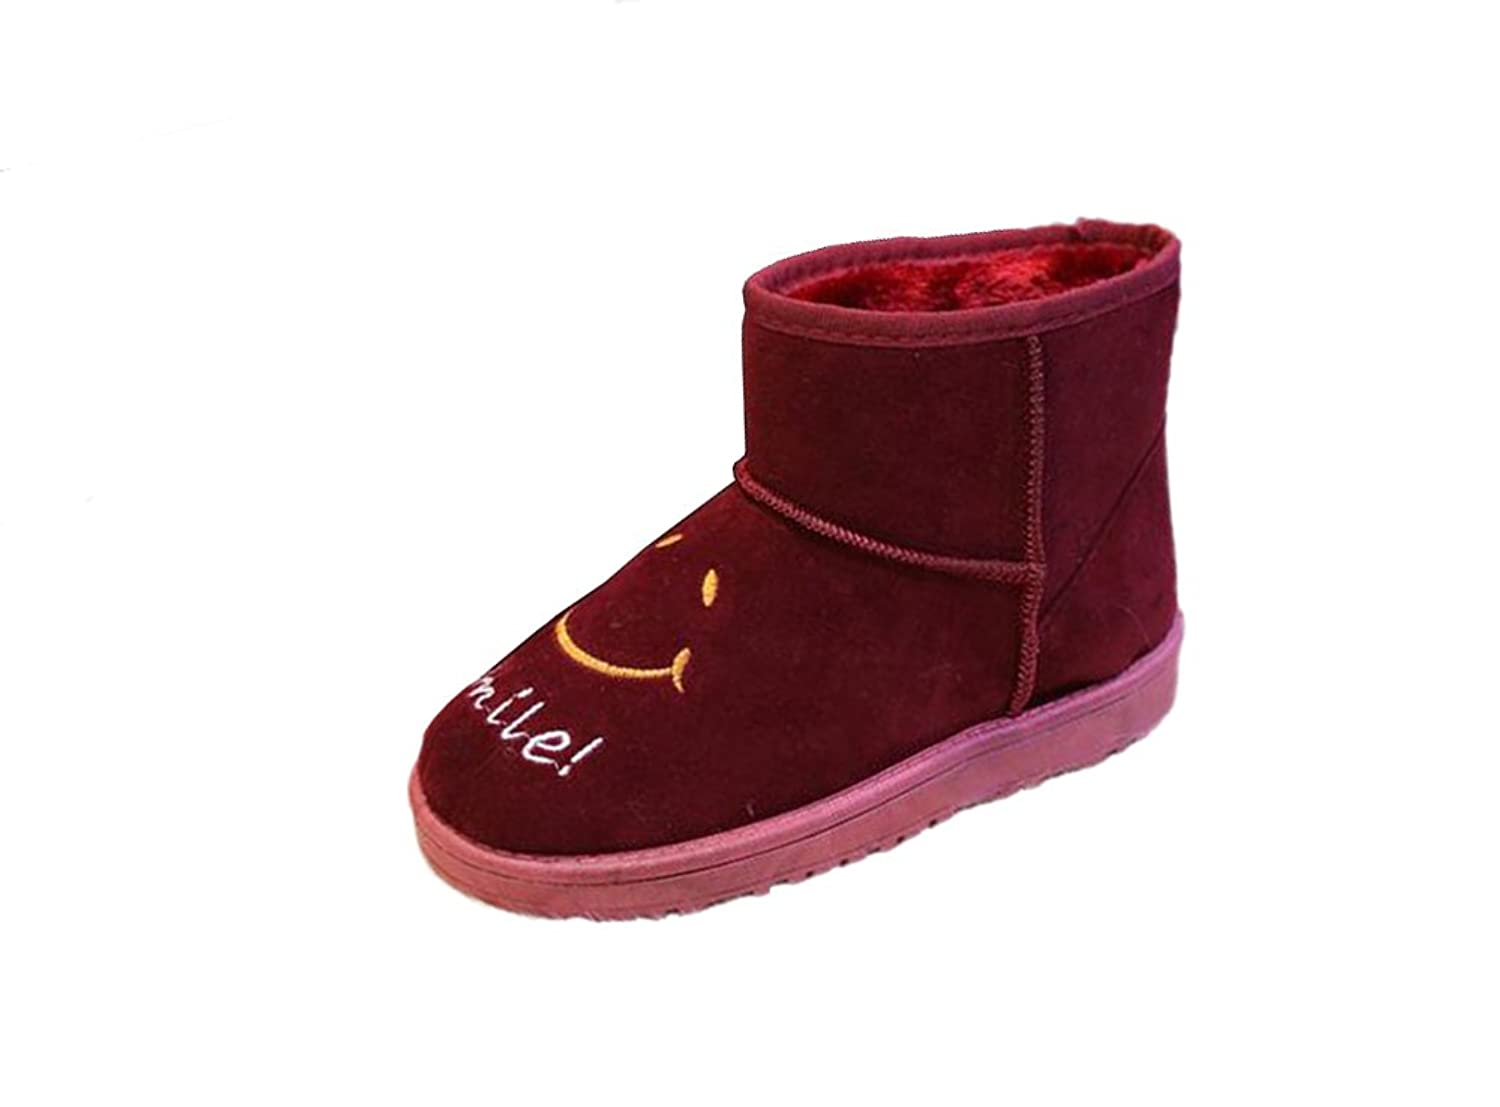 Mogu Women's Winter Short Snow Boot Smile Face Thick Cotton Flat Ankle Boots